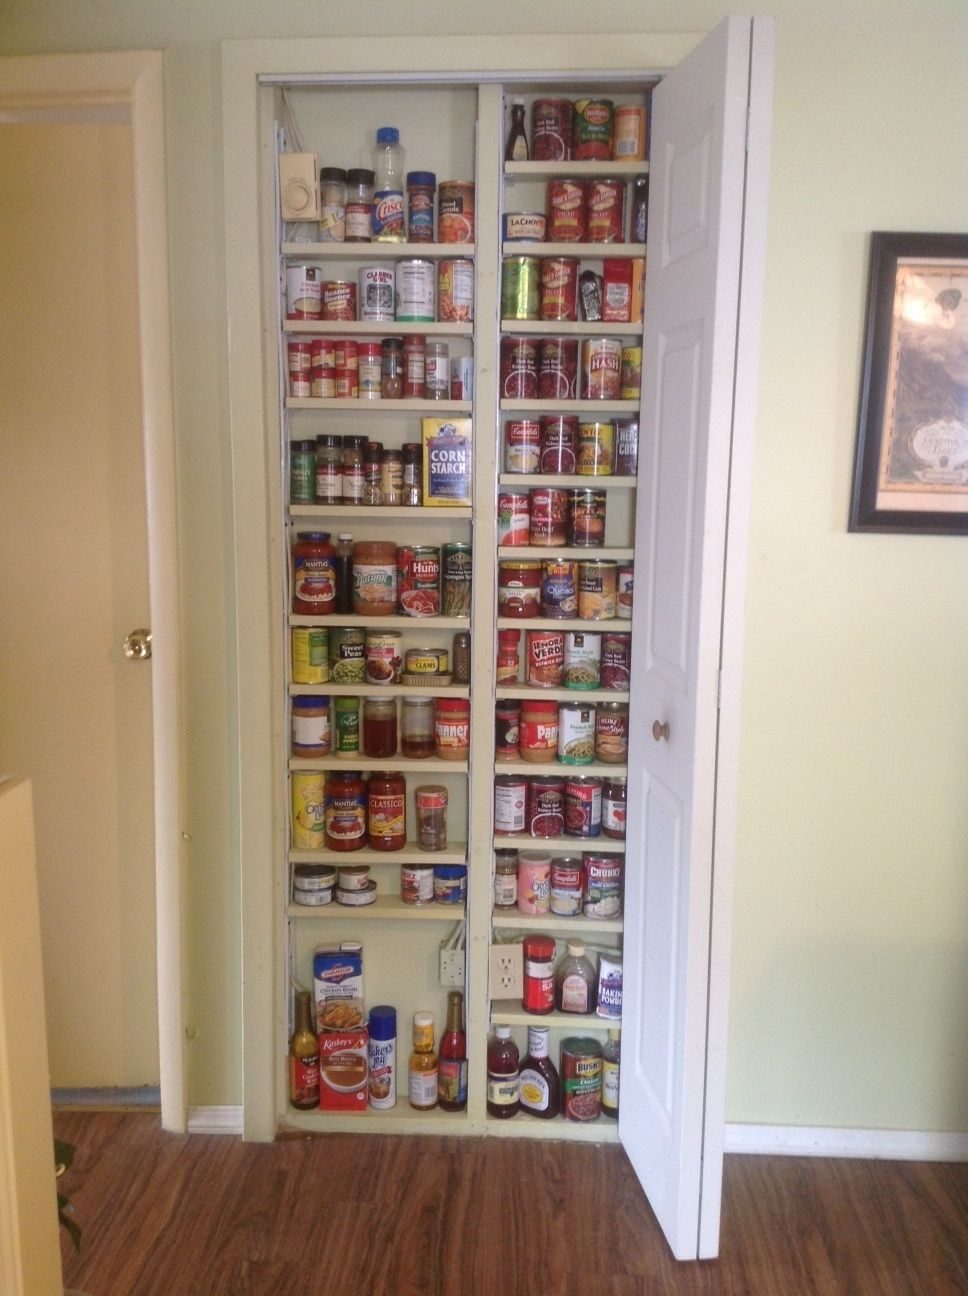 build into interior wall only walls are usually 2x4 construction rh pinterest com how to build shelves into an existing wall building shelves into wall